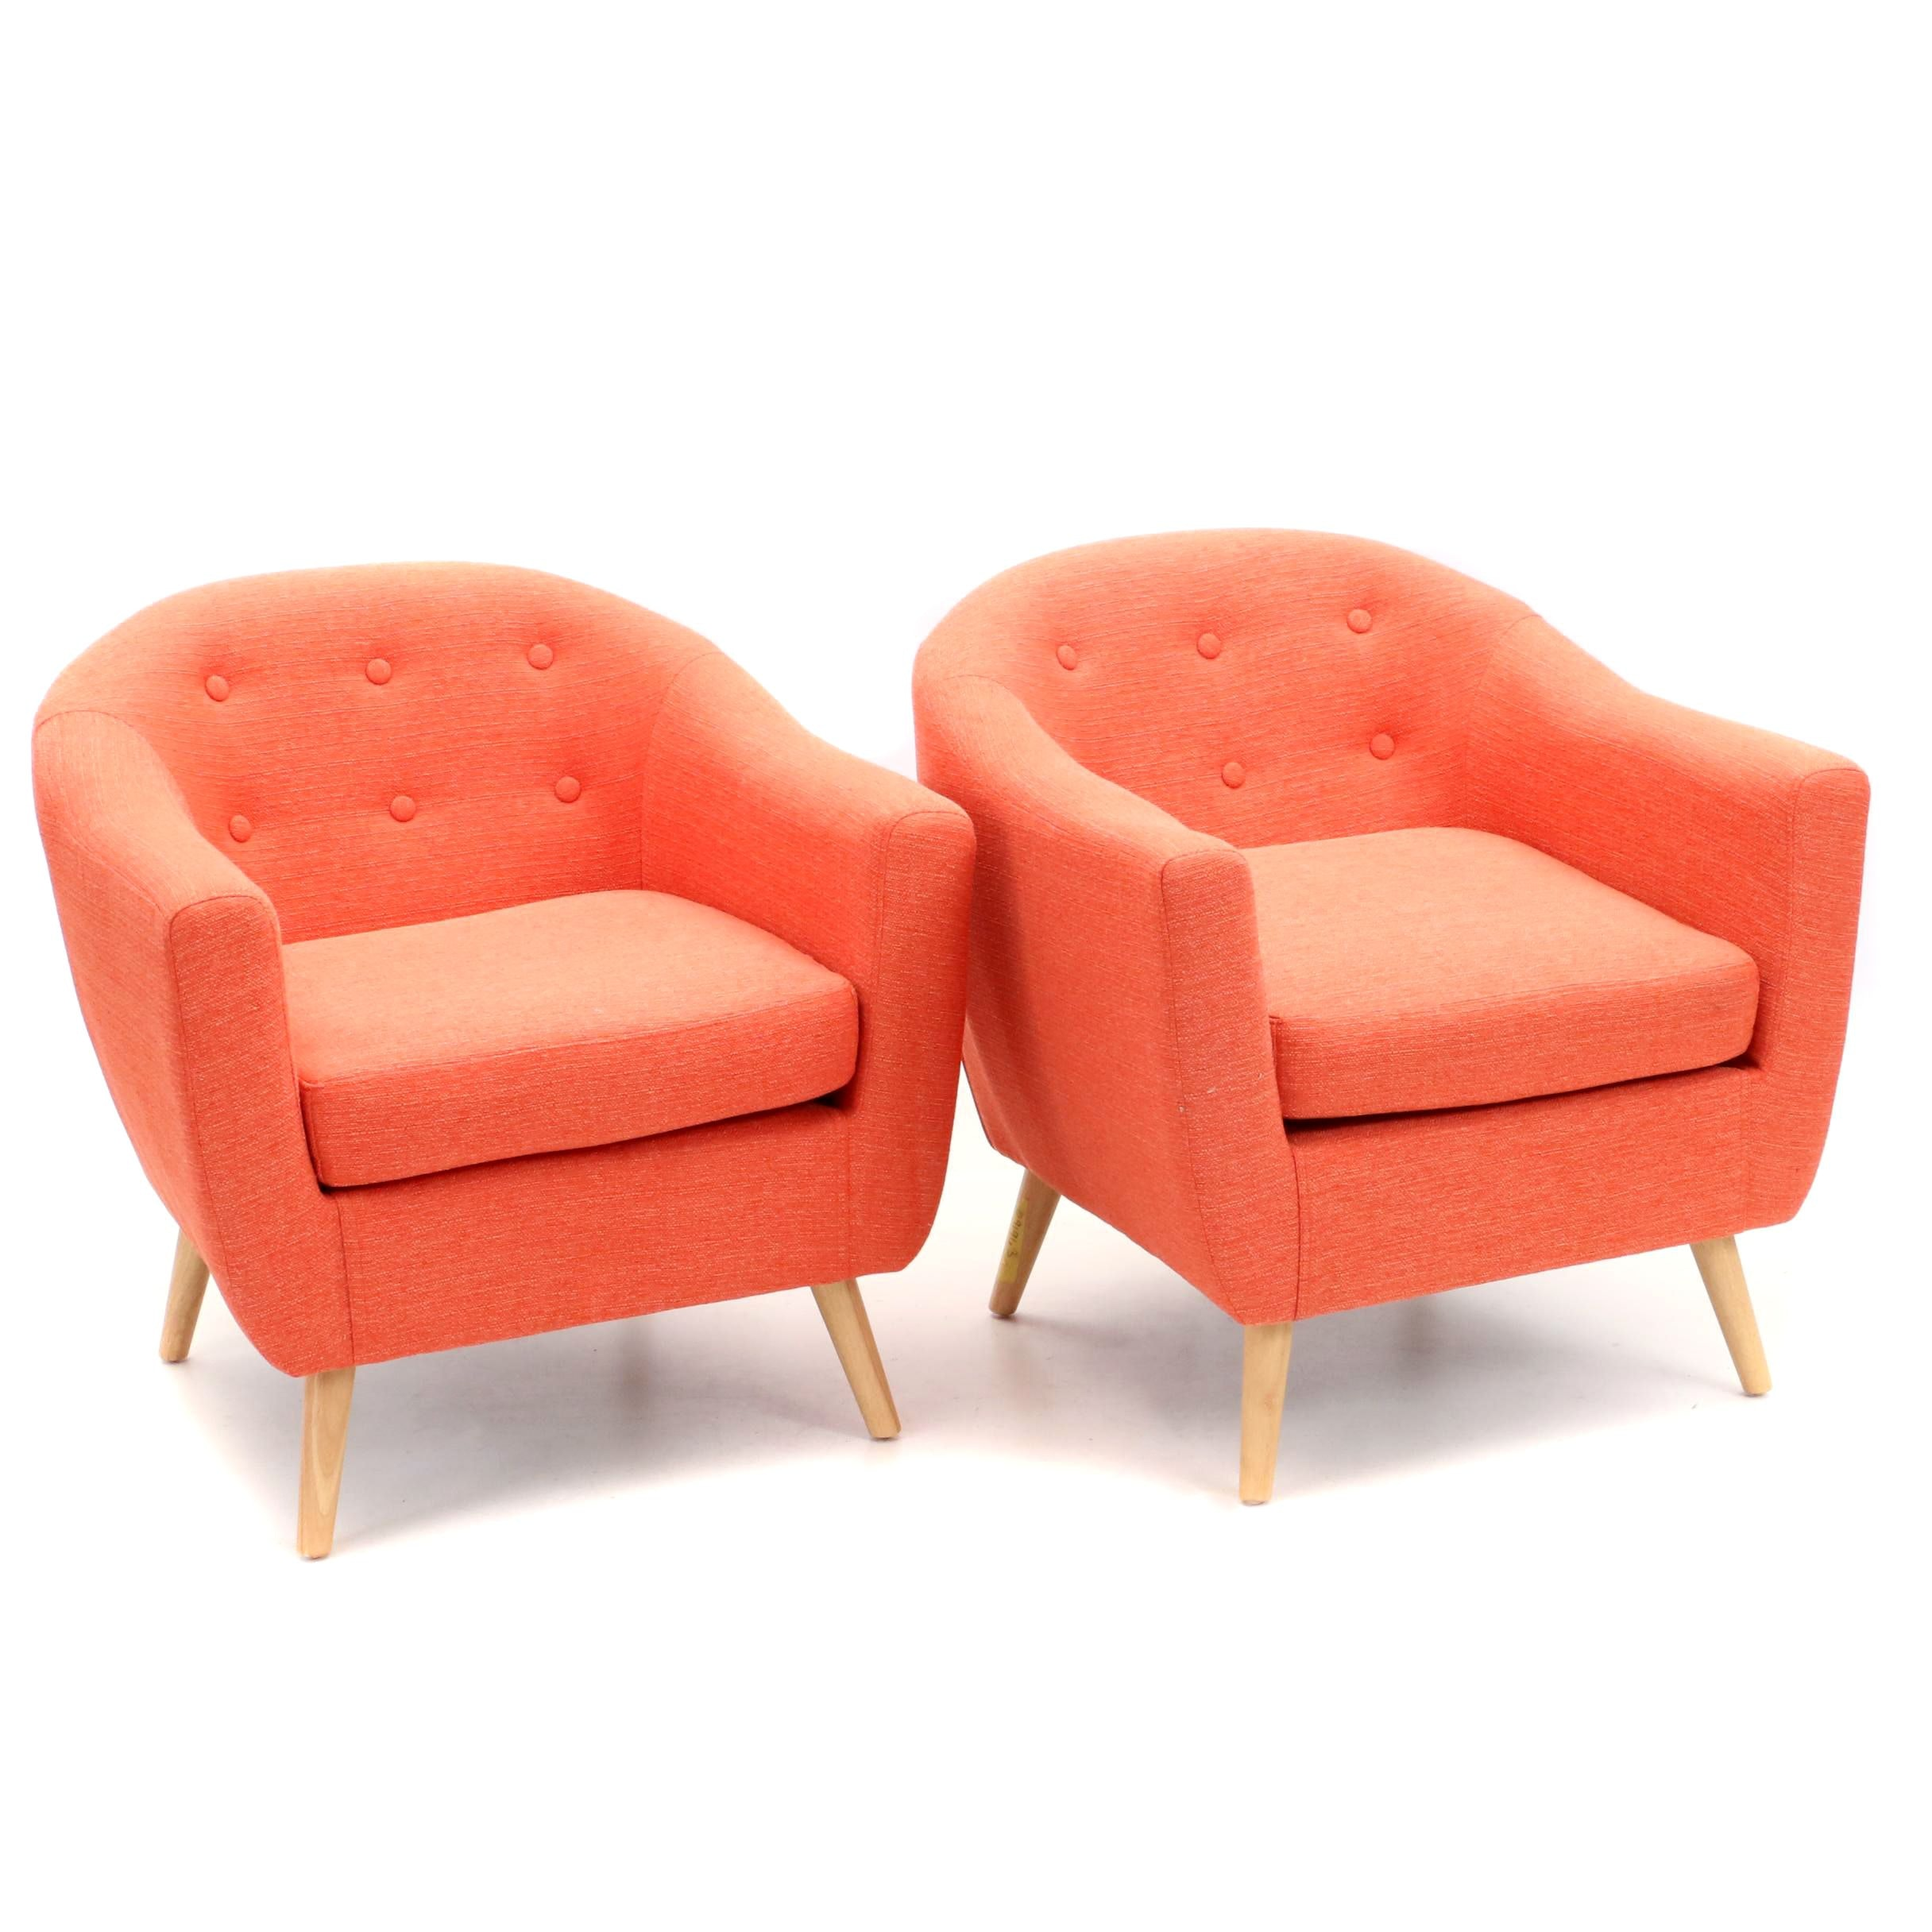 Two  Orange Upholstered Armchairs